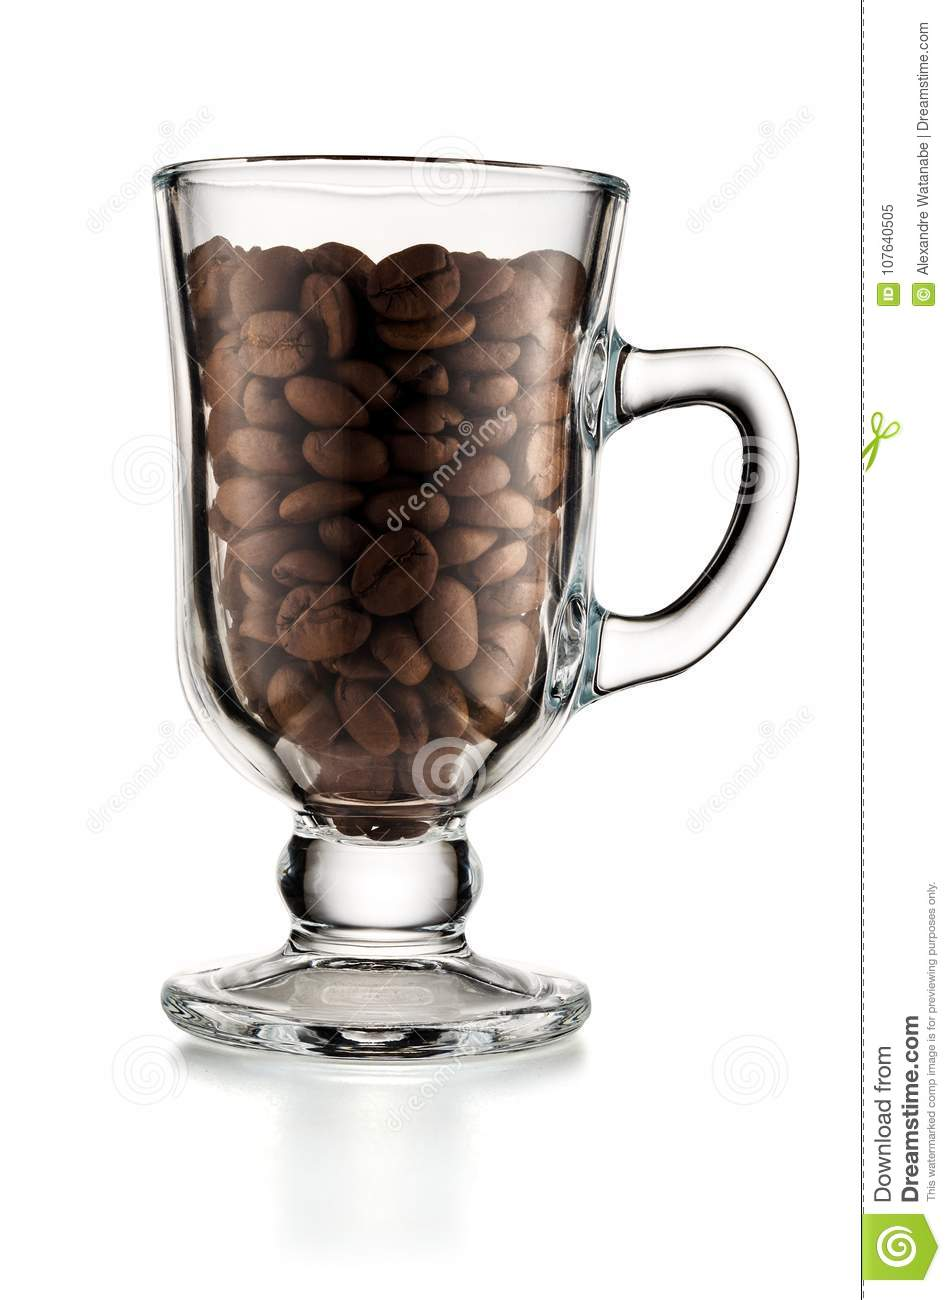 1 510 Irish Coffee Isolated Photos Free Royalty Free Stock Photos From Dreamstime